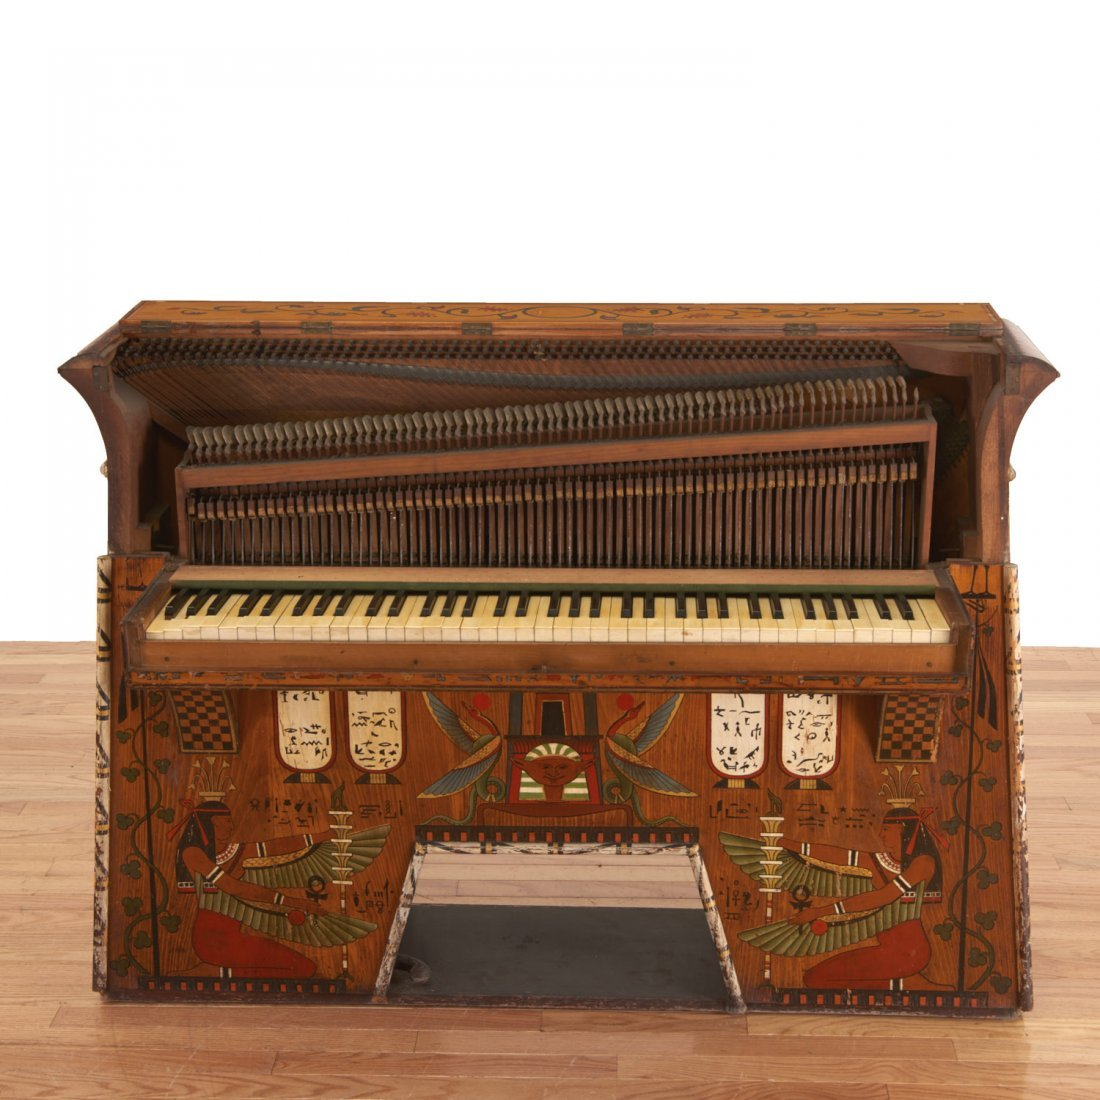 Egyptian Revival spinet piano - 8